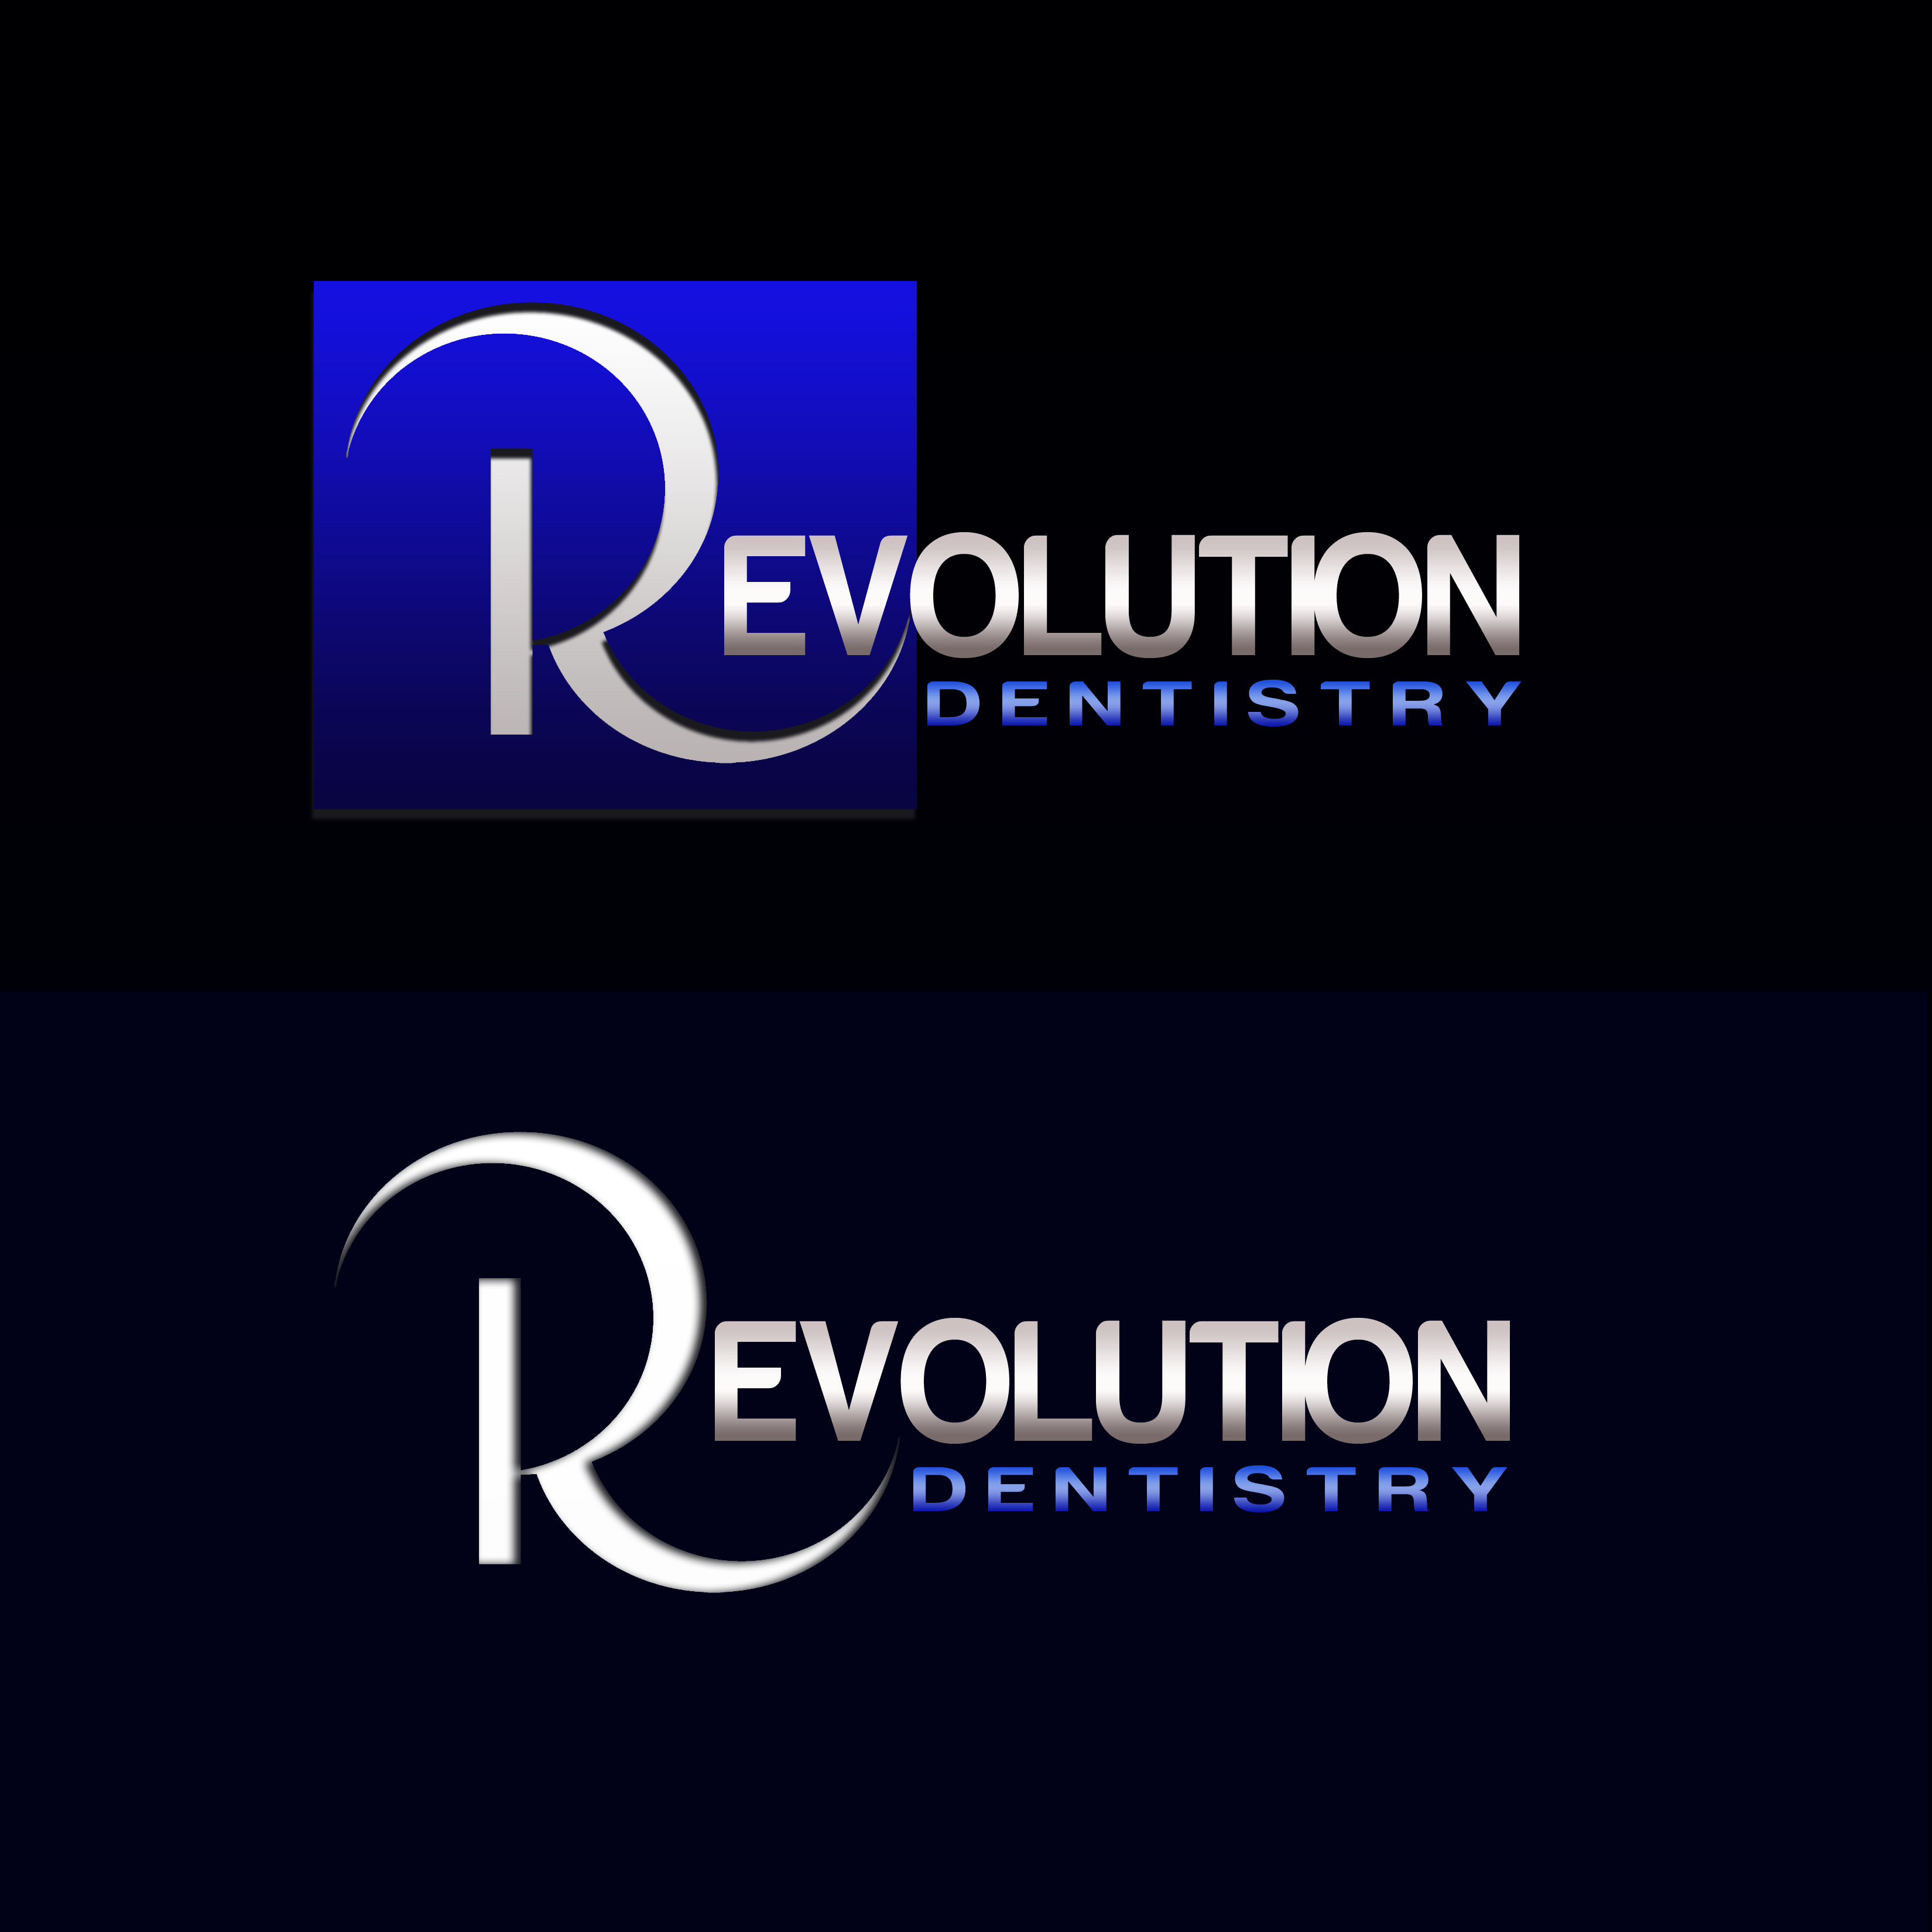 Logo Design by Allan Esclamado - Entry No. 284 in the Logo Design Contest Artistic Logo Design for Revolution Dentistry.